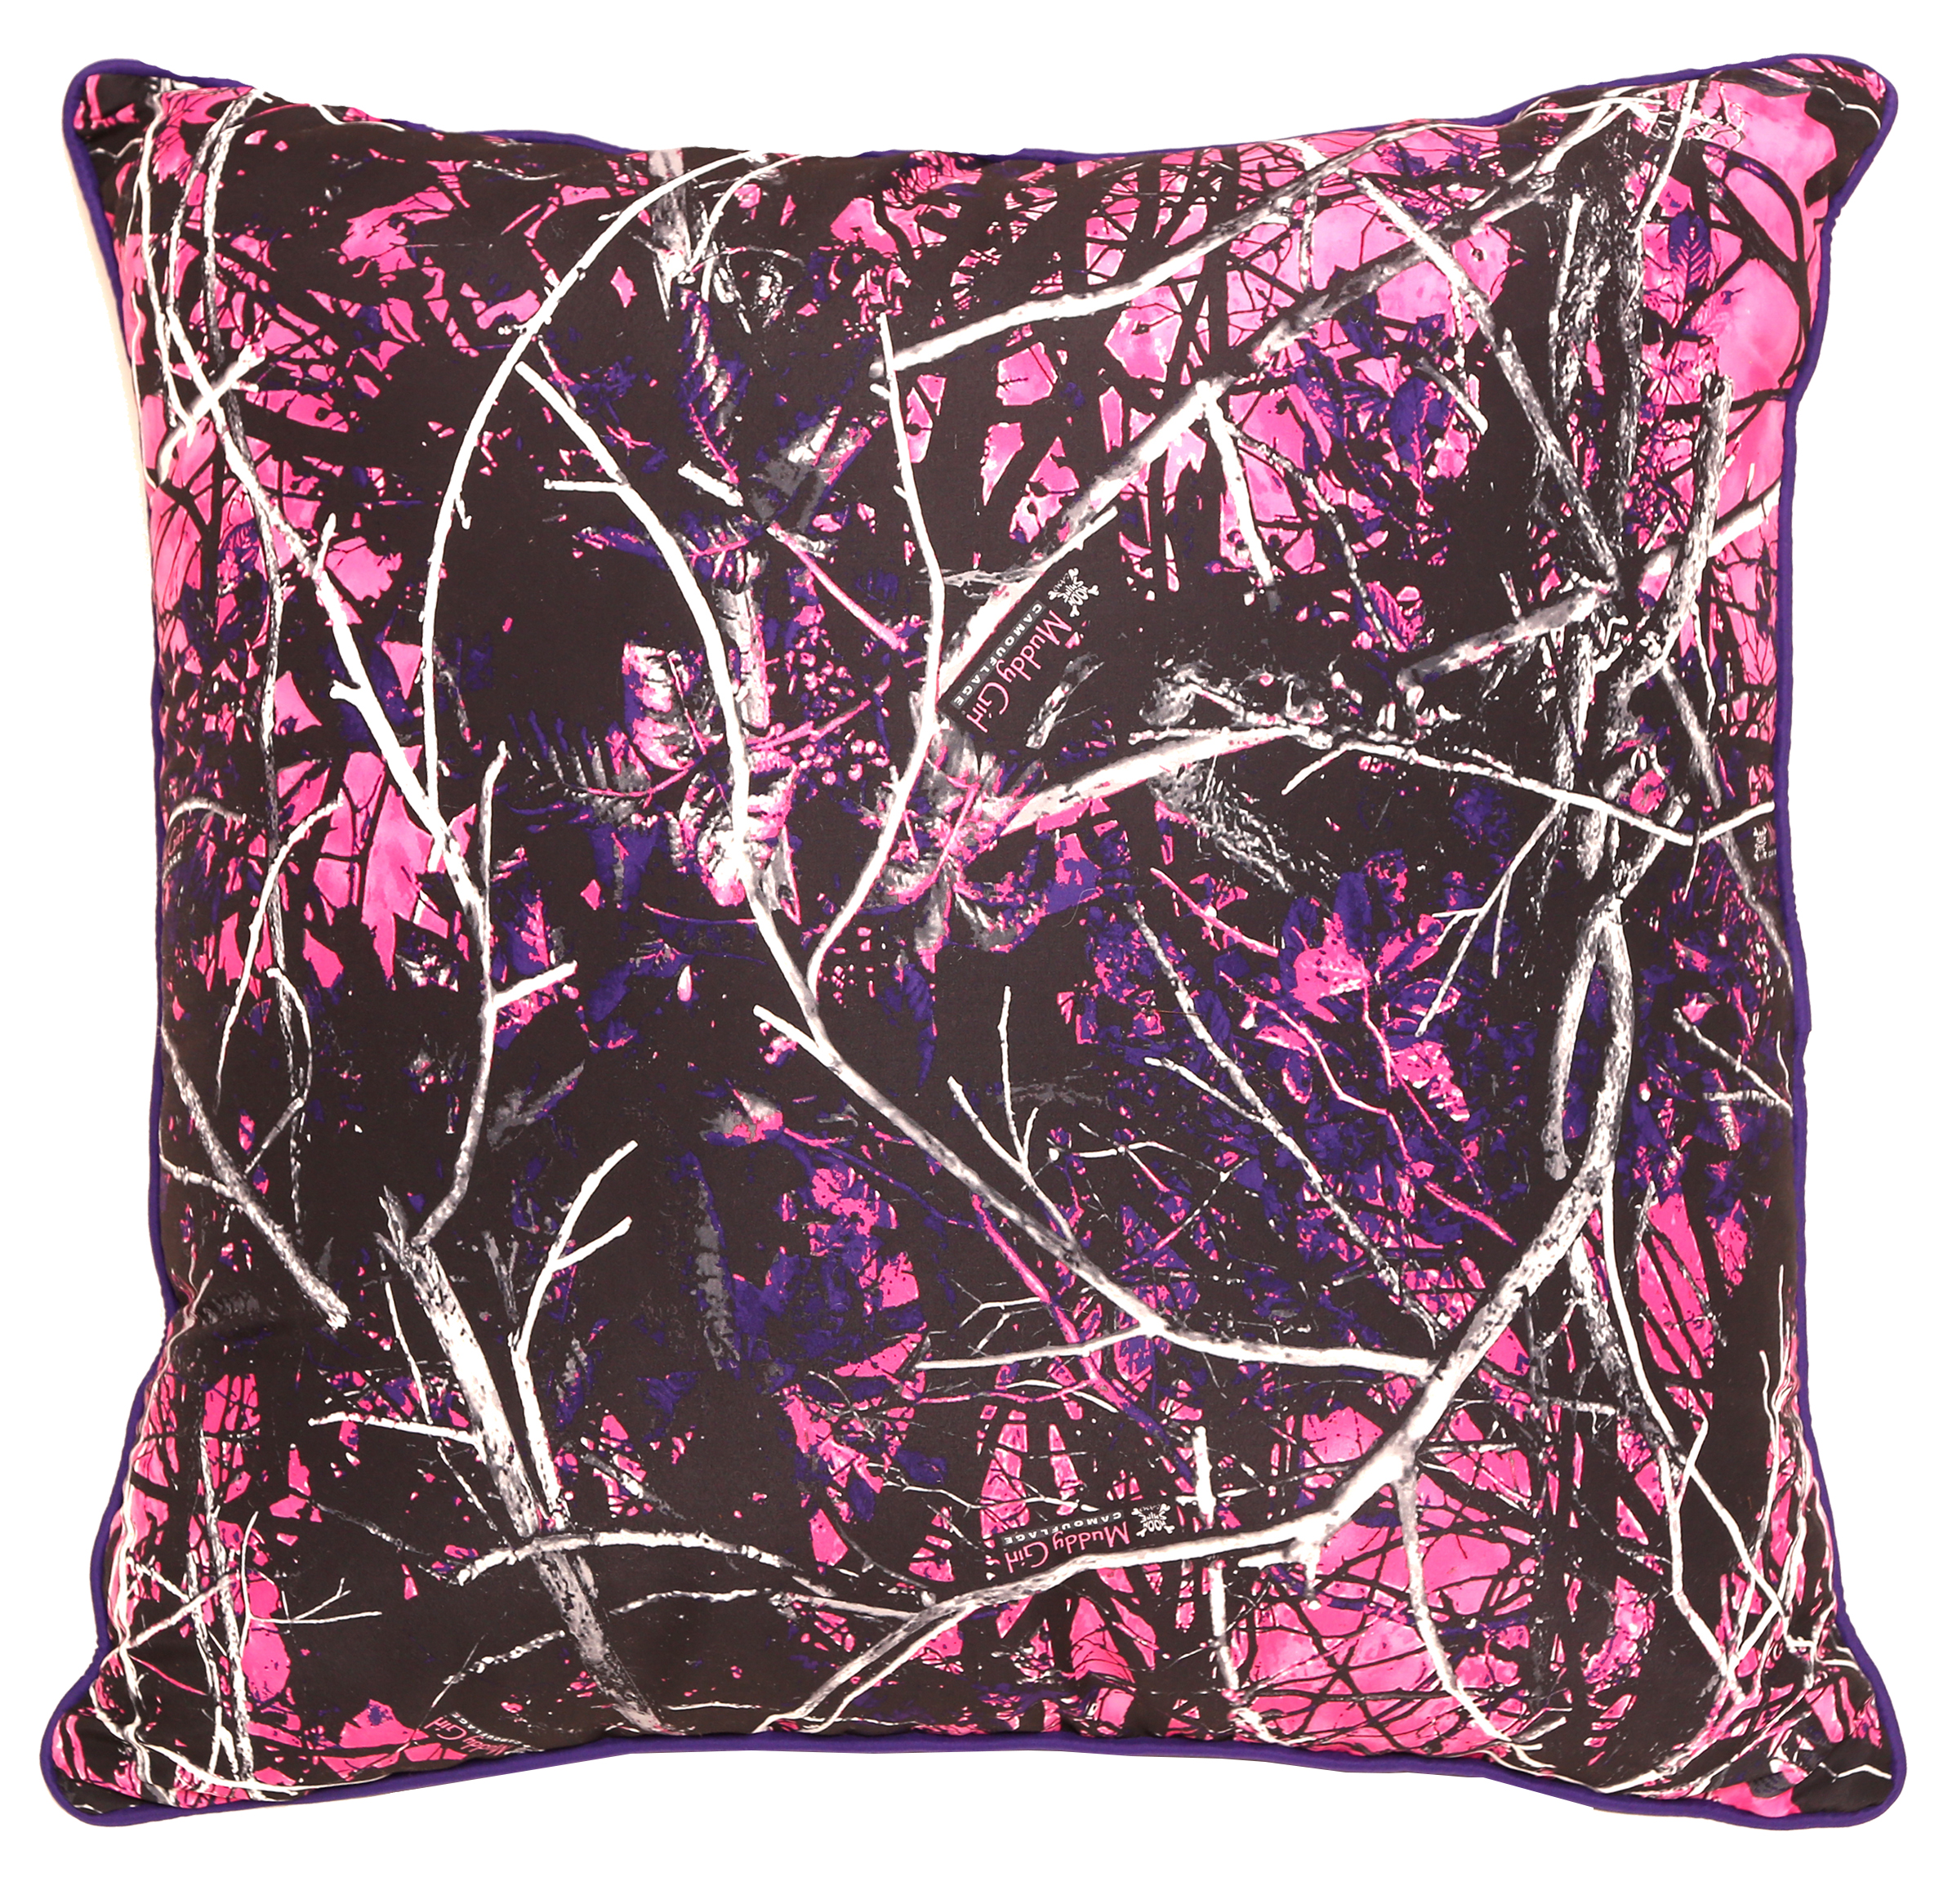 muddy add pink cart drapes inc carstens ap realtree throw girl camo product to